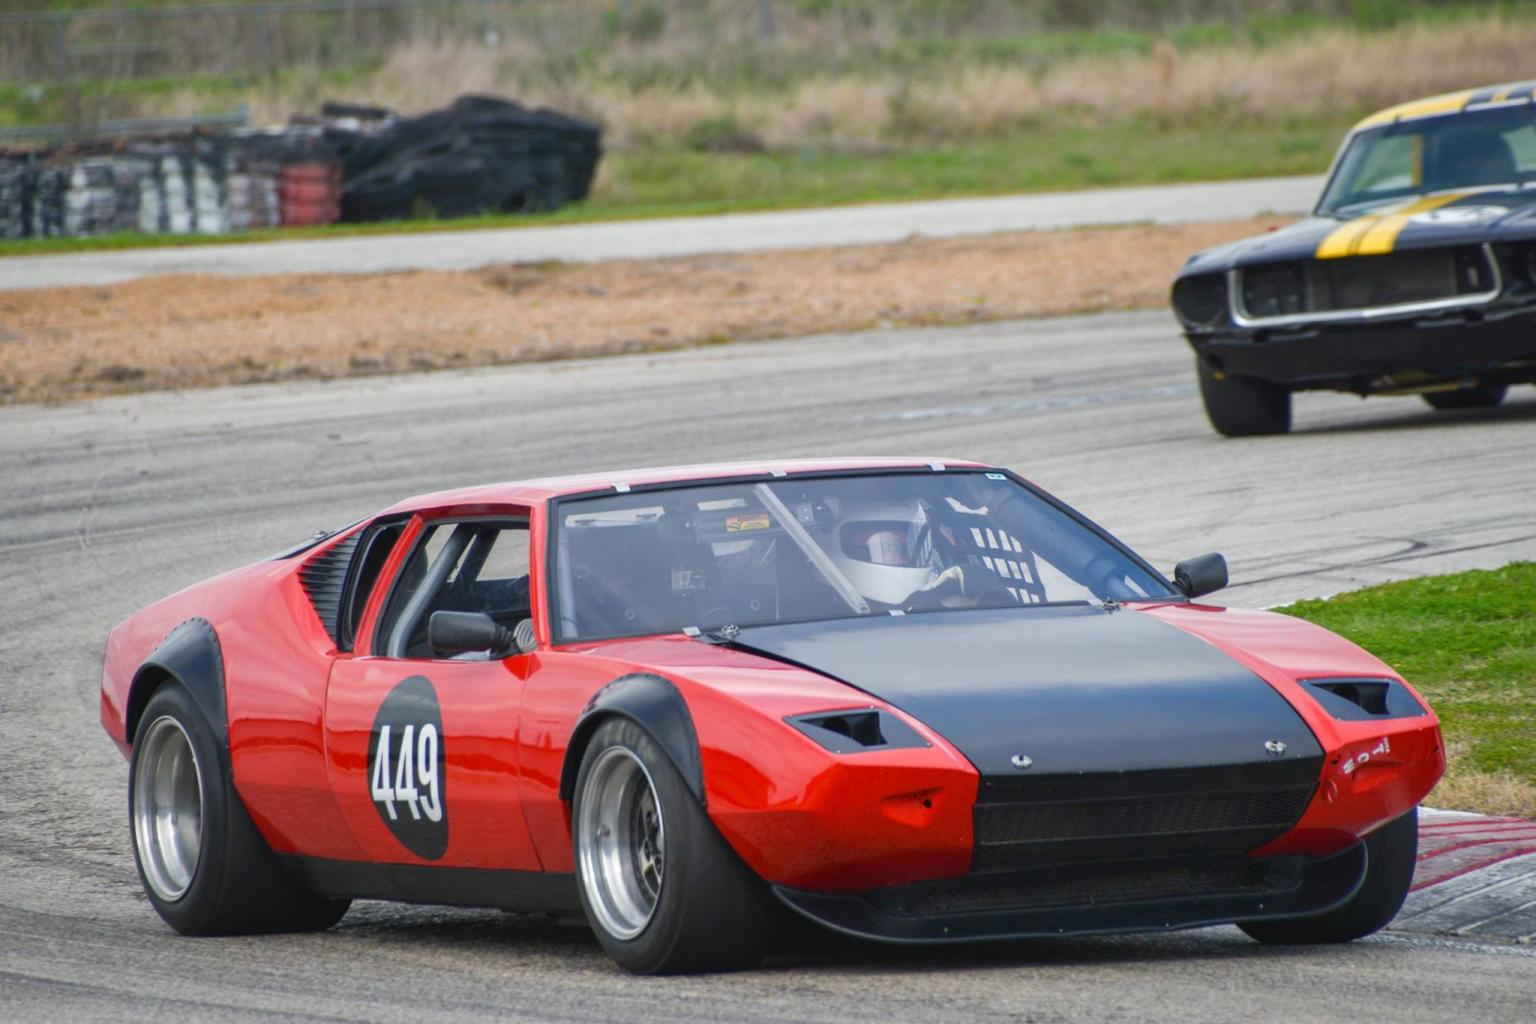 Superformance GT40 MKII For Sale-17192545_1380442992017204_1951726128080794638_o-1-jpg